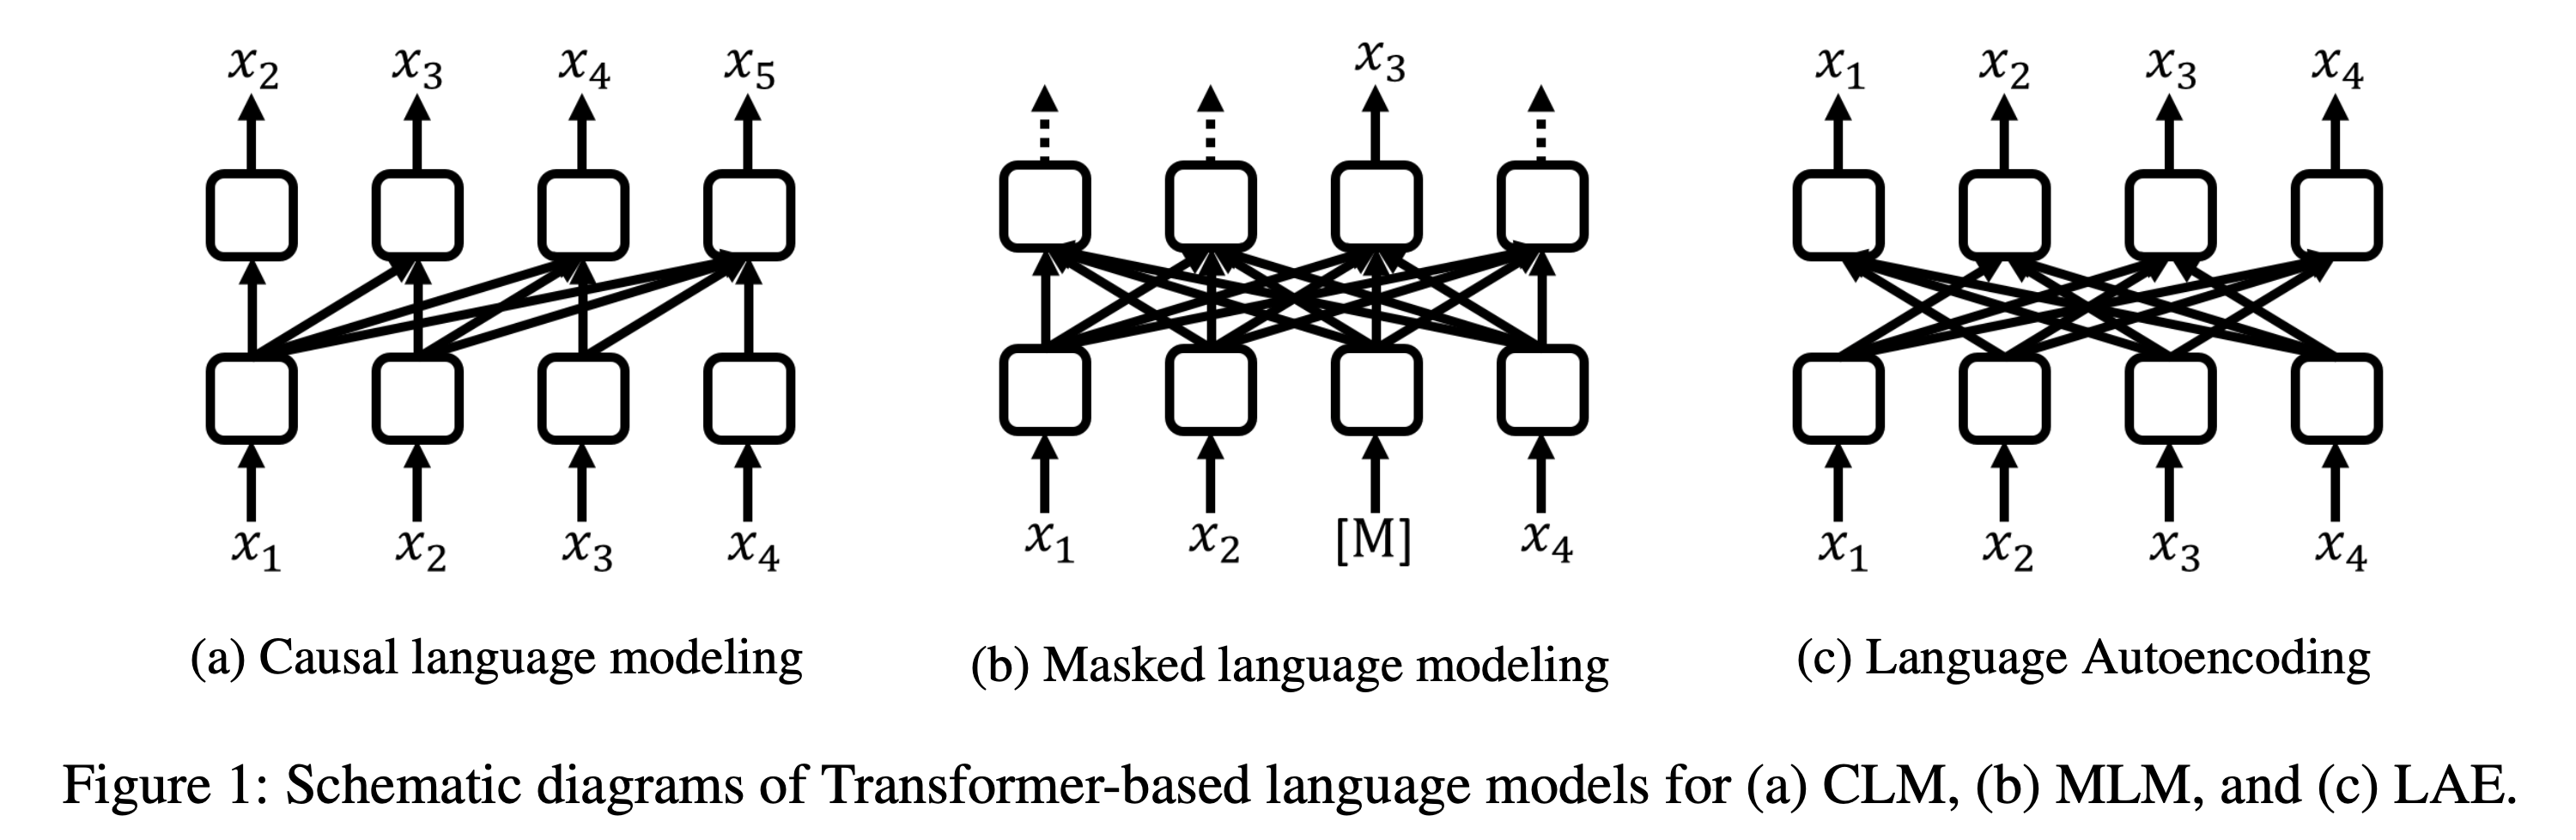 Fast and Accurate Deep Bidirectional Language Representations for Unsupervised Learning figure